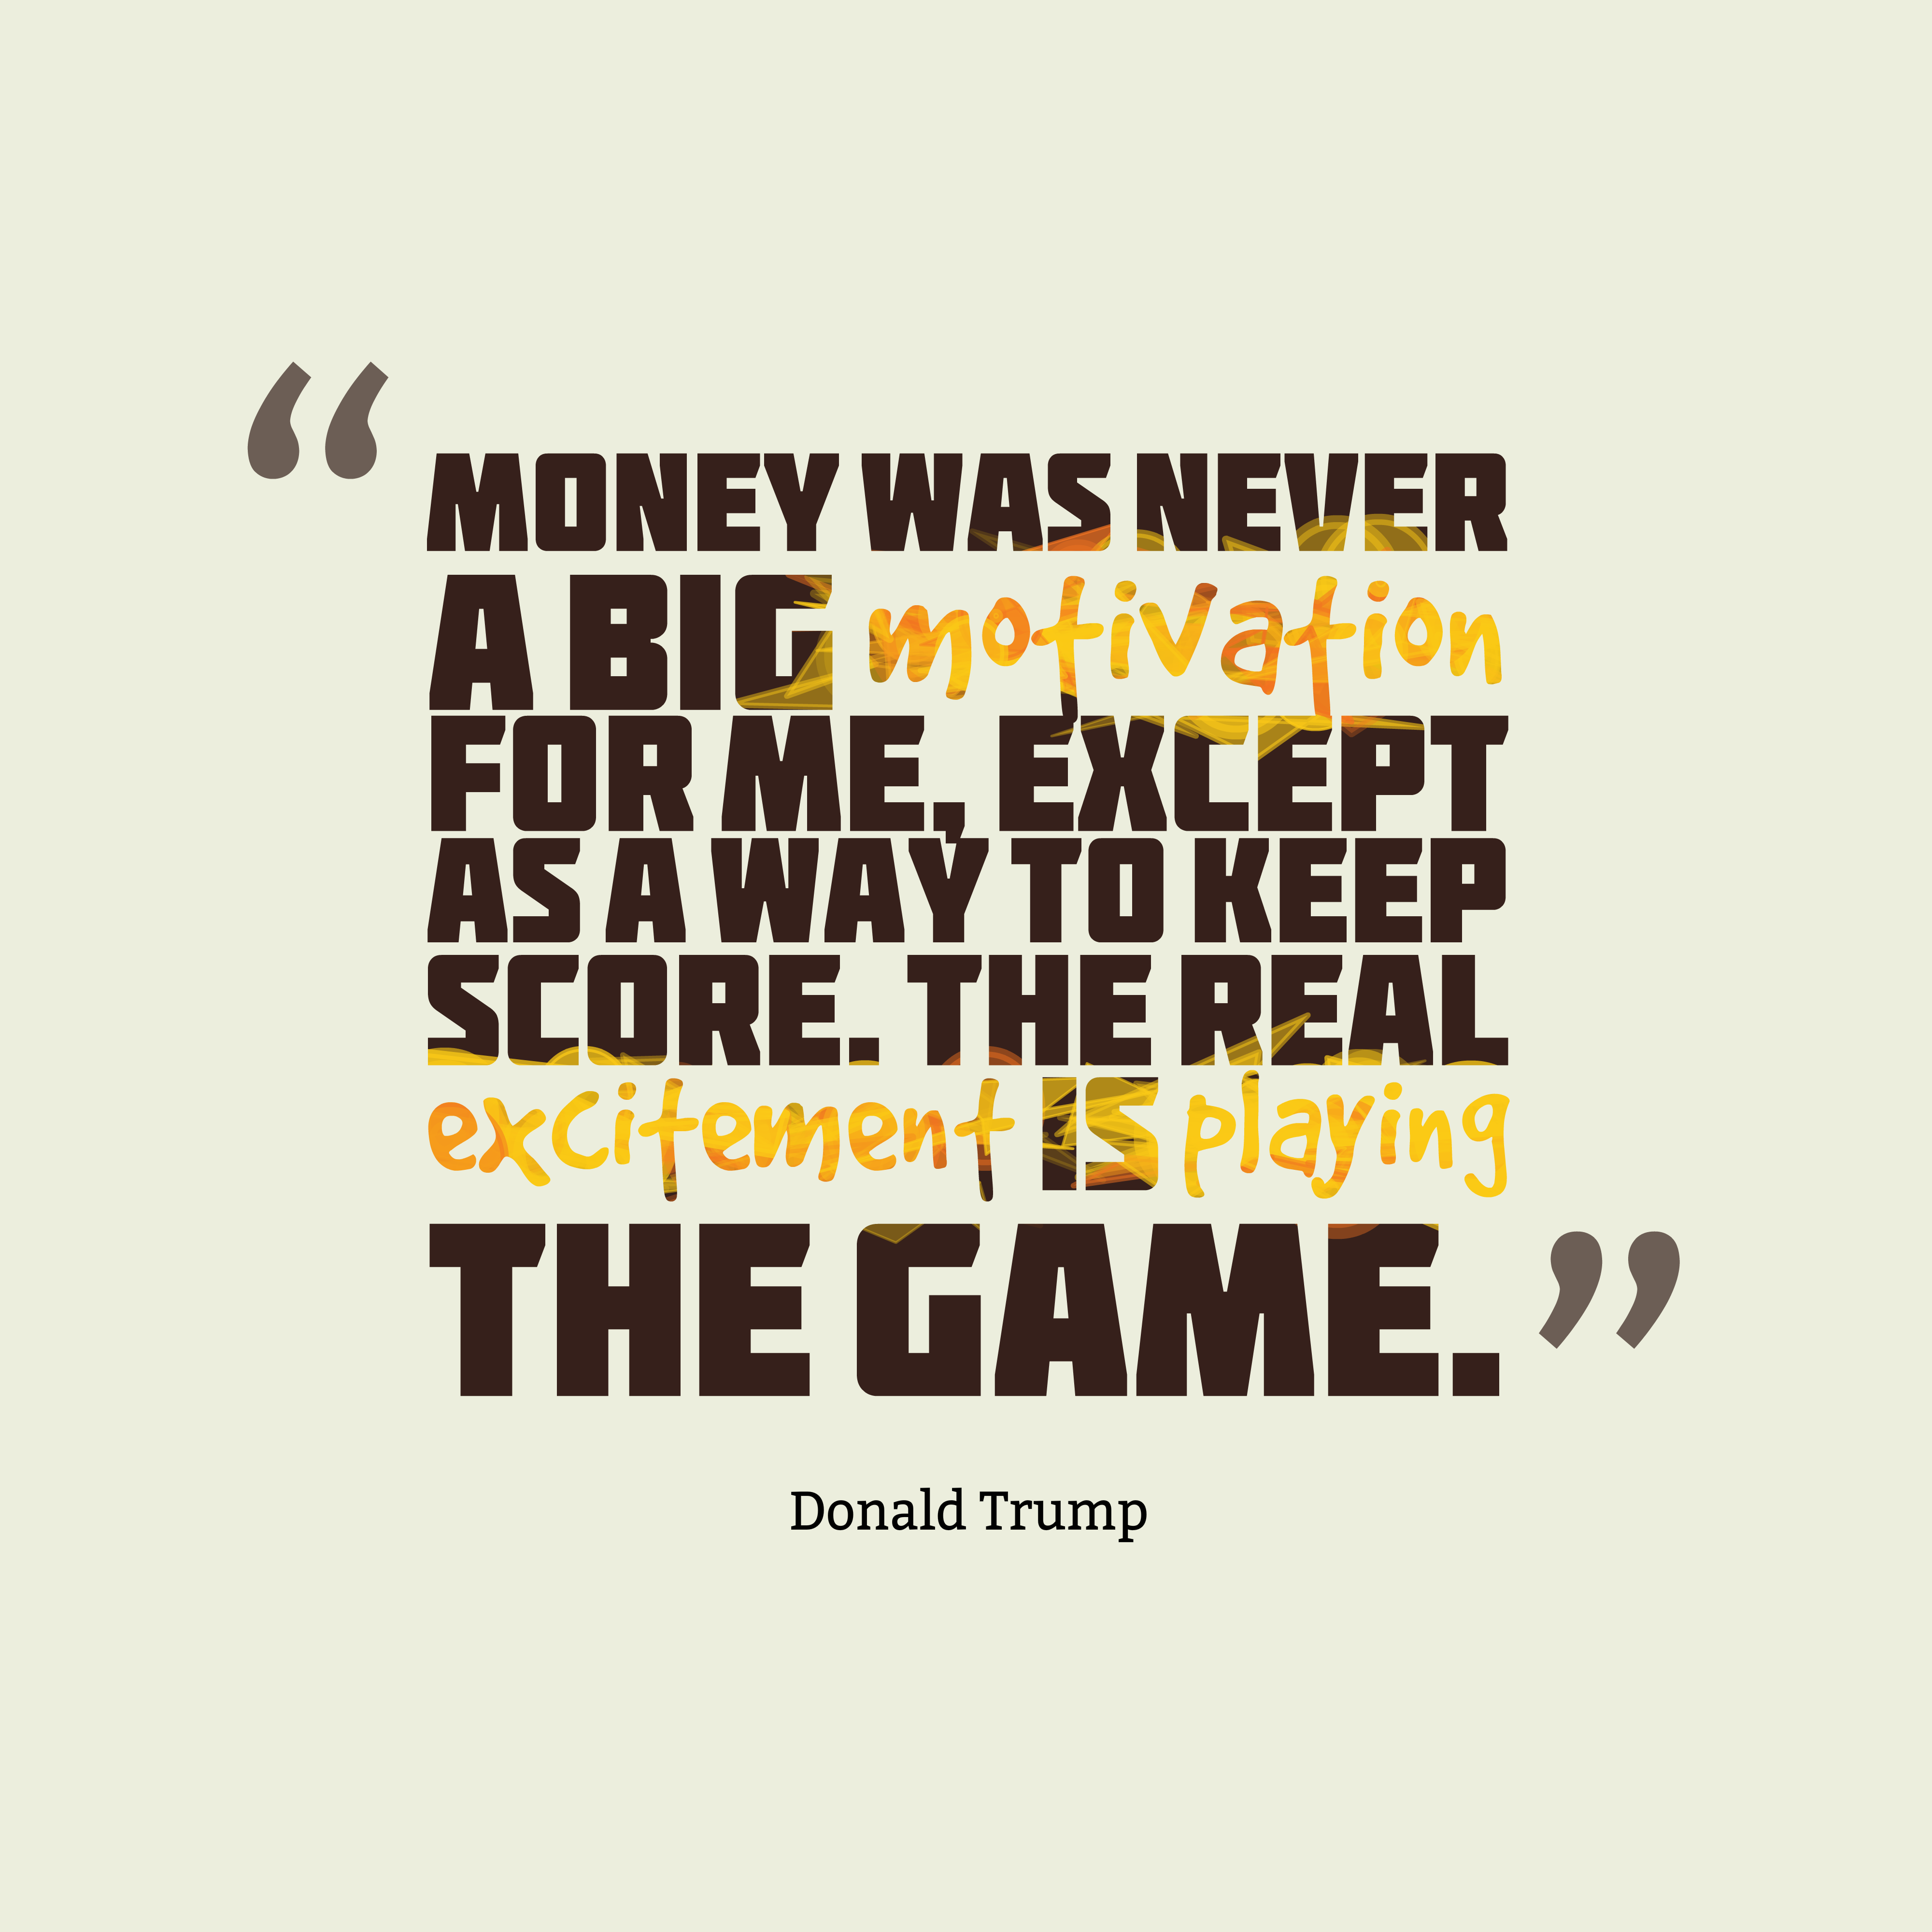 Finance Quotes Picture Donald Trump Quotes About Finance  Quotescover